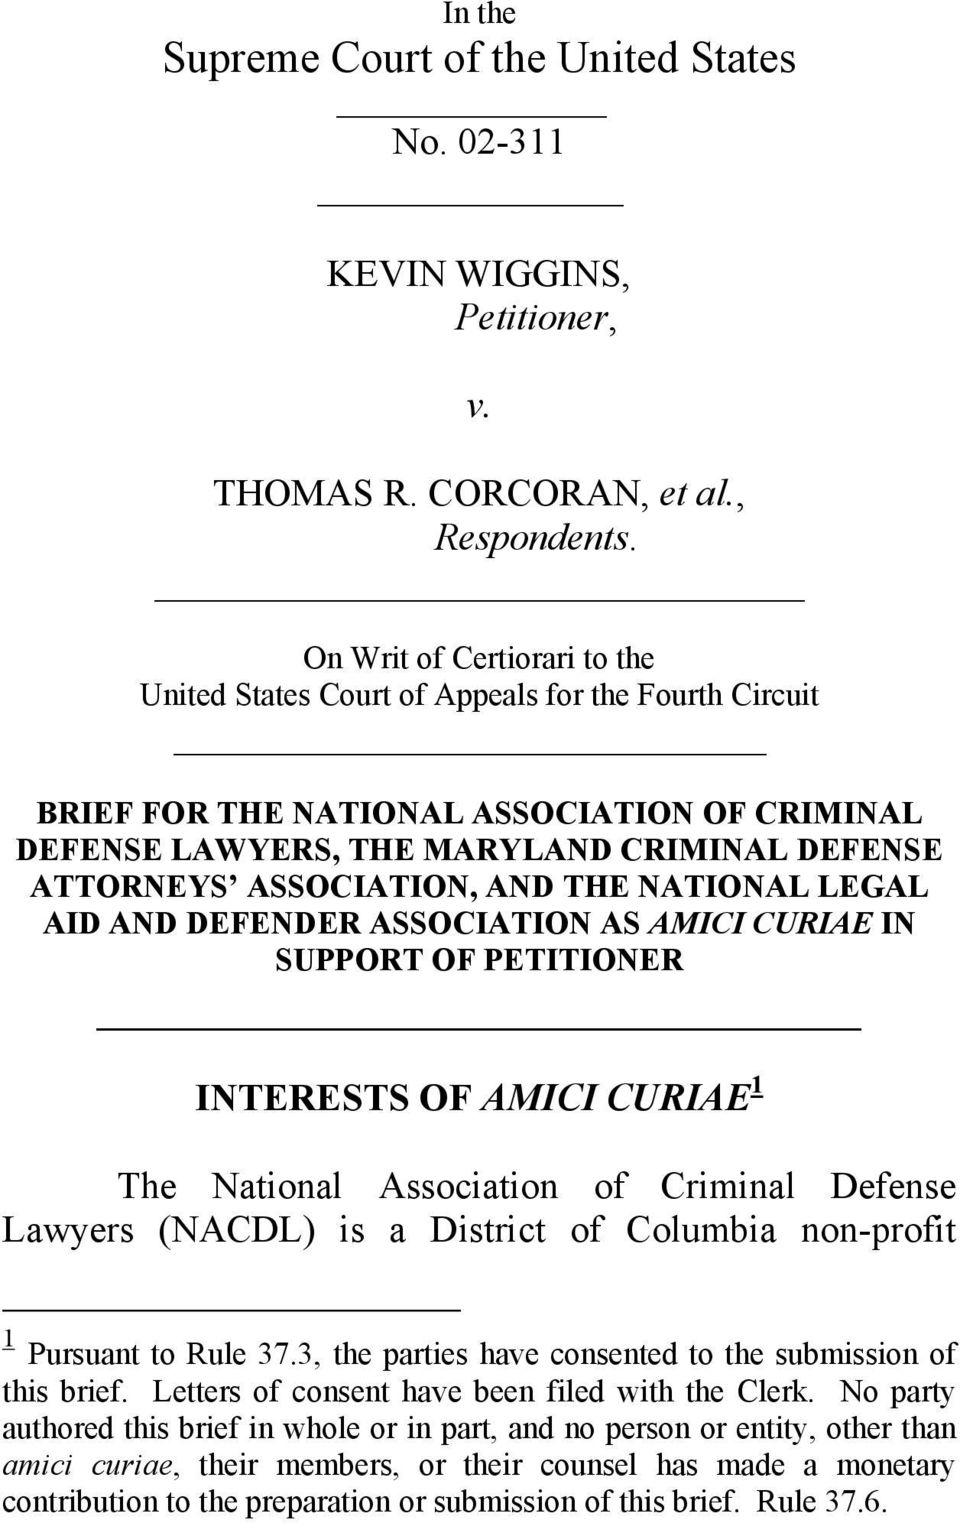 AND THE NATIONAL LEGAL AID AND DEFENDER ASSOCIATION AS AMICI CURIAE IN SUPPORT OF PETITIONER INTERESTS OF AMICI CURIAE 1 The National Association of Criminal Defense Lawyers (NACDL) is a District of